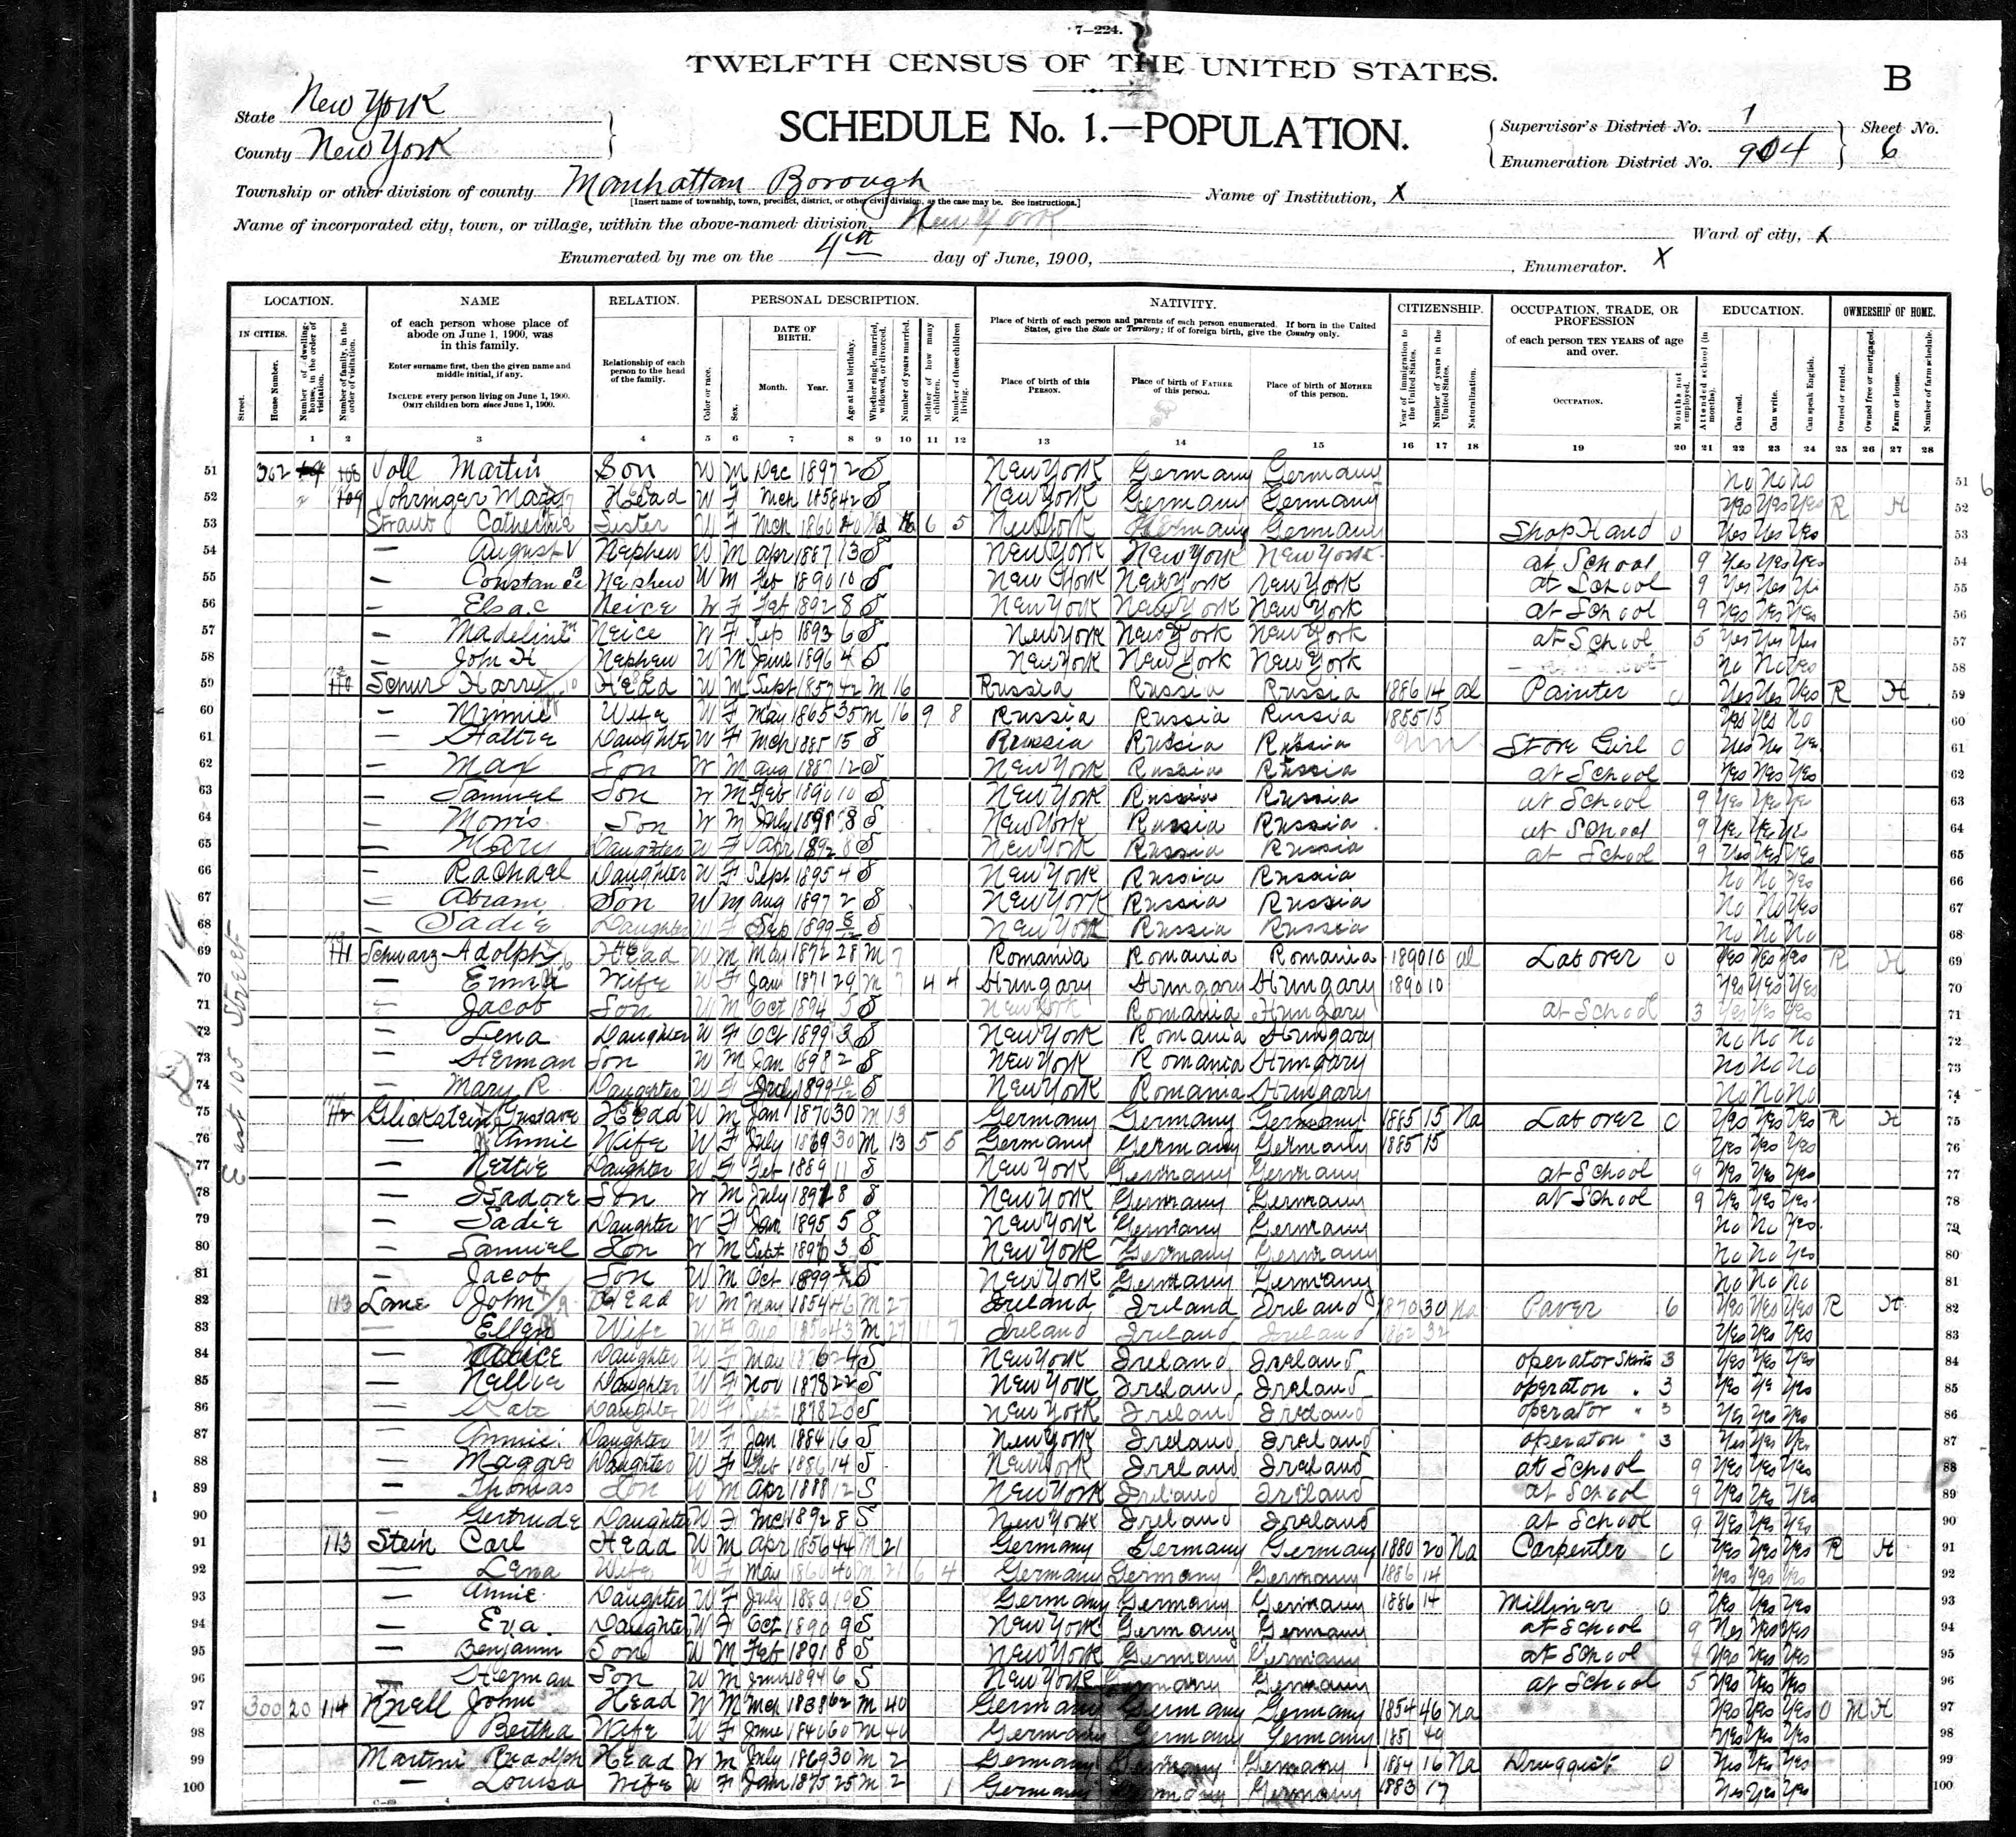 Brianblitz family tree and document index 1928 pelham ny directory 1930 census 1944 trip to canada 1945 trip to canada death certificate 6231948 xflitez Image collections